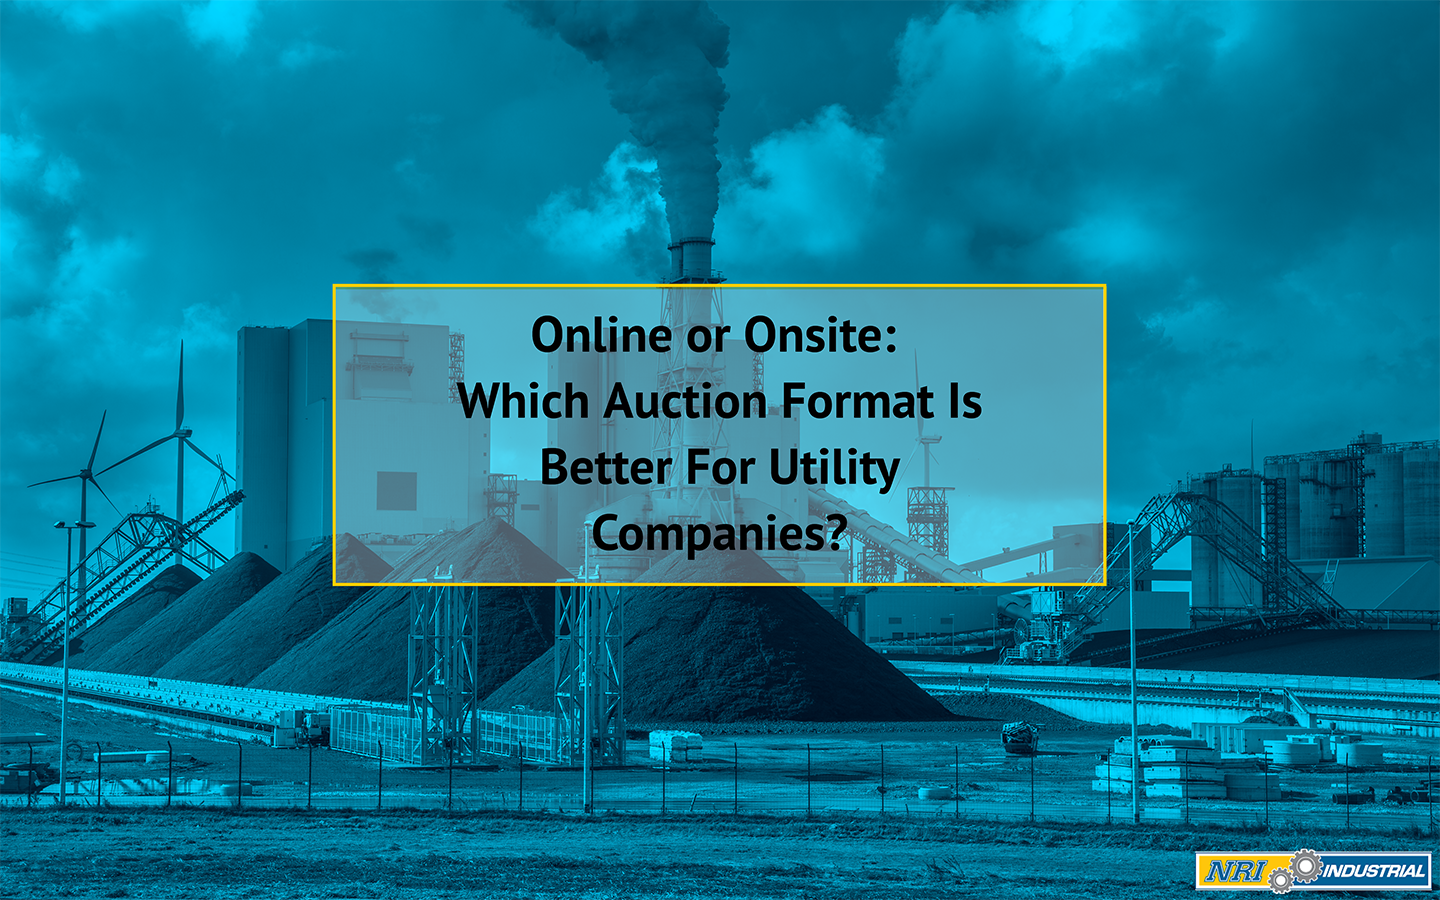 Online or Onsite: Which Auction Format is Better for Utilities Companies?